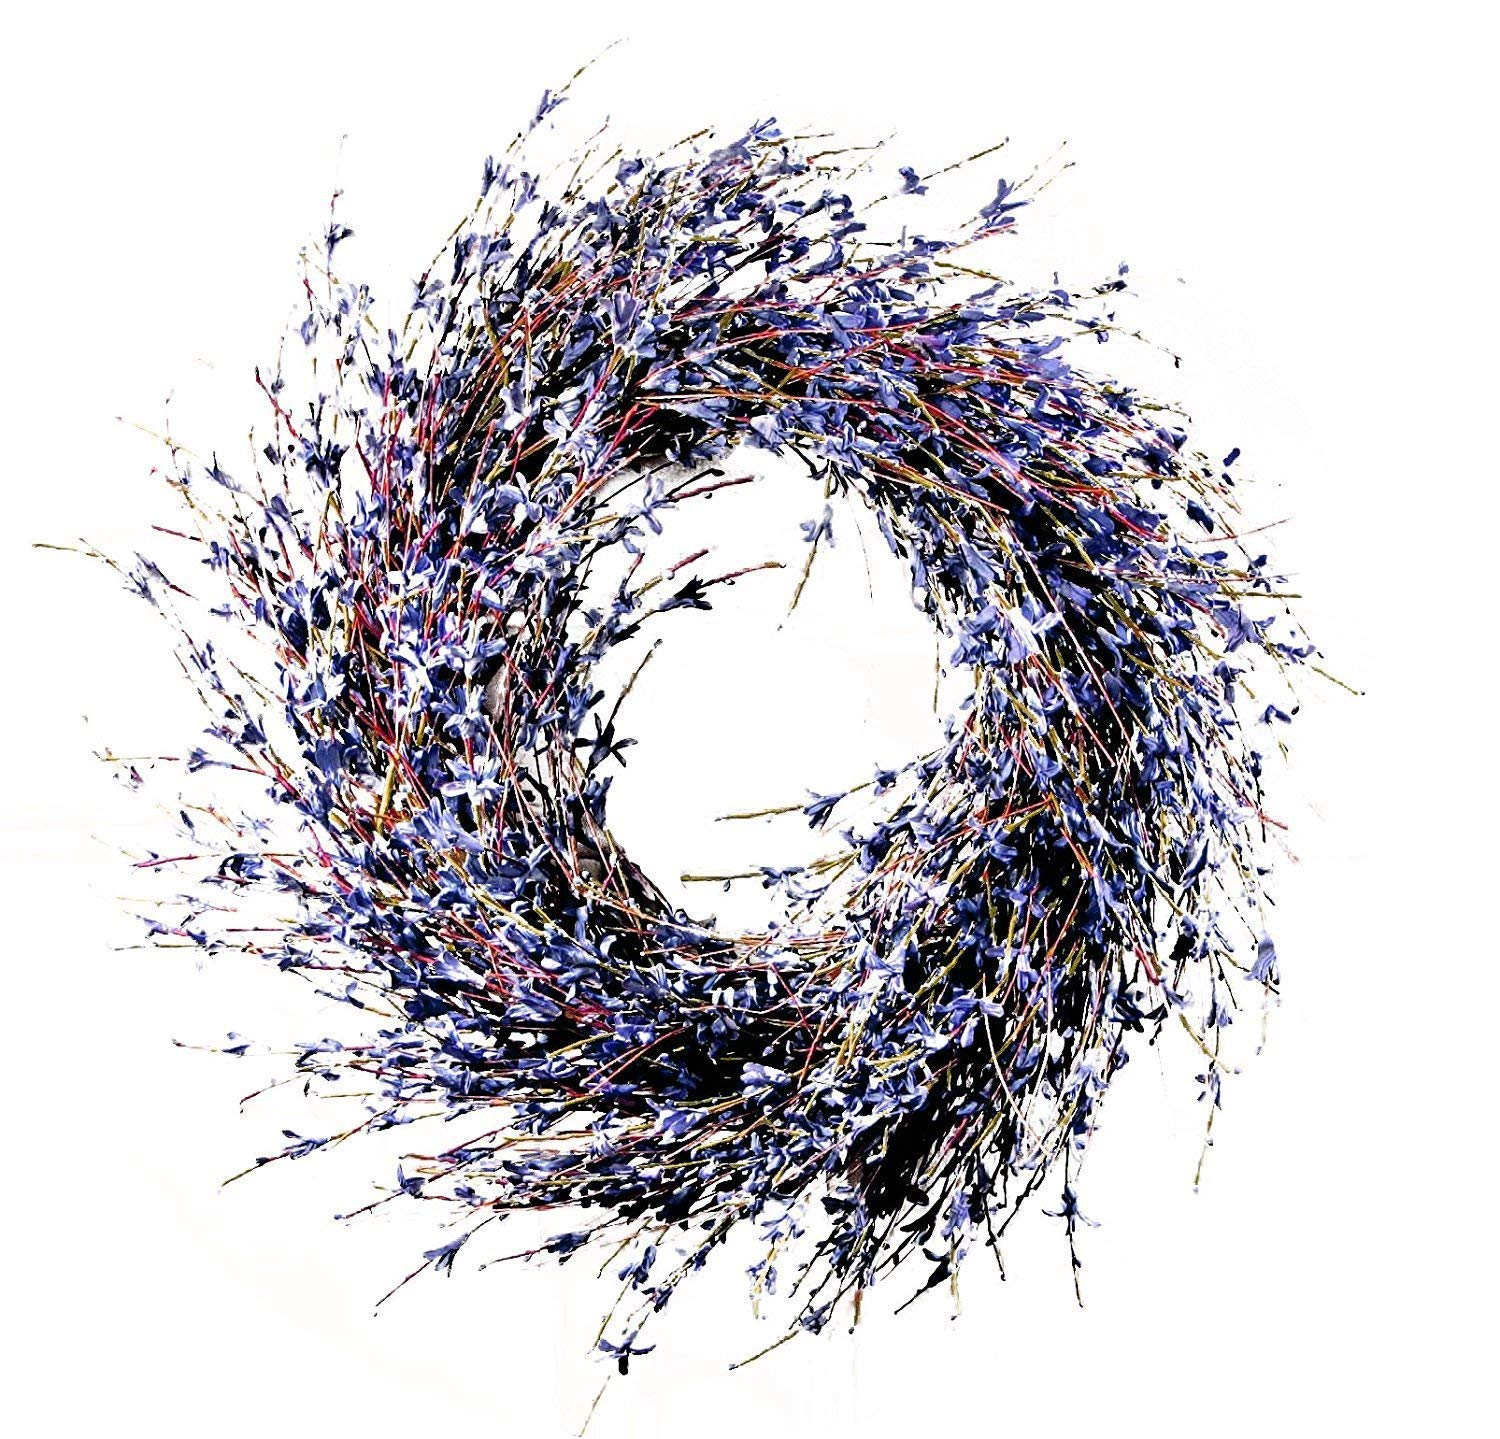 """Charm & Chic 10047 Faux Dried Lavender Floral Door Wreath Natural for Fall Front Door or Indoor Home Decor - ✿ DESIGN Handcrafted elegantly with Lavender and fall foliage on a thick natural grapevine wreath base.  ✿ USEThis is a gorgeous, high-quality door wreath that will bring style and charm to the front of your home. Perfect for the holidays, this lavender wreath is versatile enough to welcome guests to your home for any occasion. In fact, you may even want to keep it hanging year round! It is small enough not to overwhelm your door, yet it never fails to catch your attention with its grace. ✿ MEASUREDimensions: 19.7"""" W x 2""""D x 19.7"""" H Weight: Approximately 2 lbs. Use: Indoor and outdoor use. Perfect as home accent around the holidays or any time. Material: Paper, twigs Includes: Wreath with artificial lavender-like flowers - living-room-decor, living-room, home-decor - 814kjEik8NL -"""